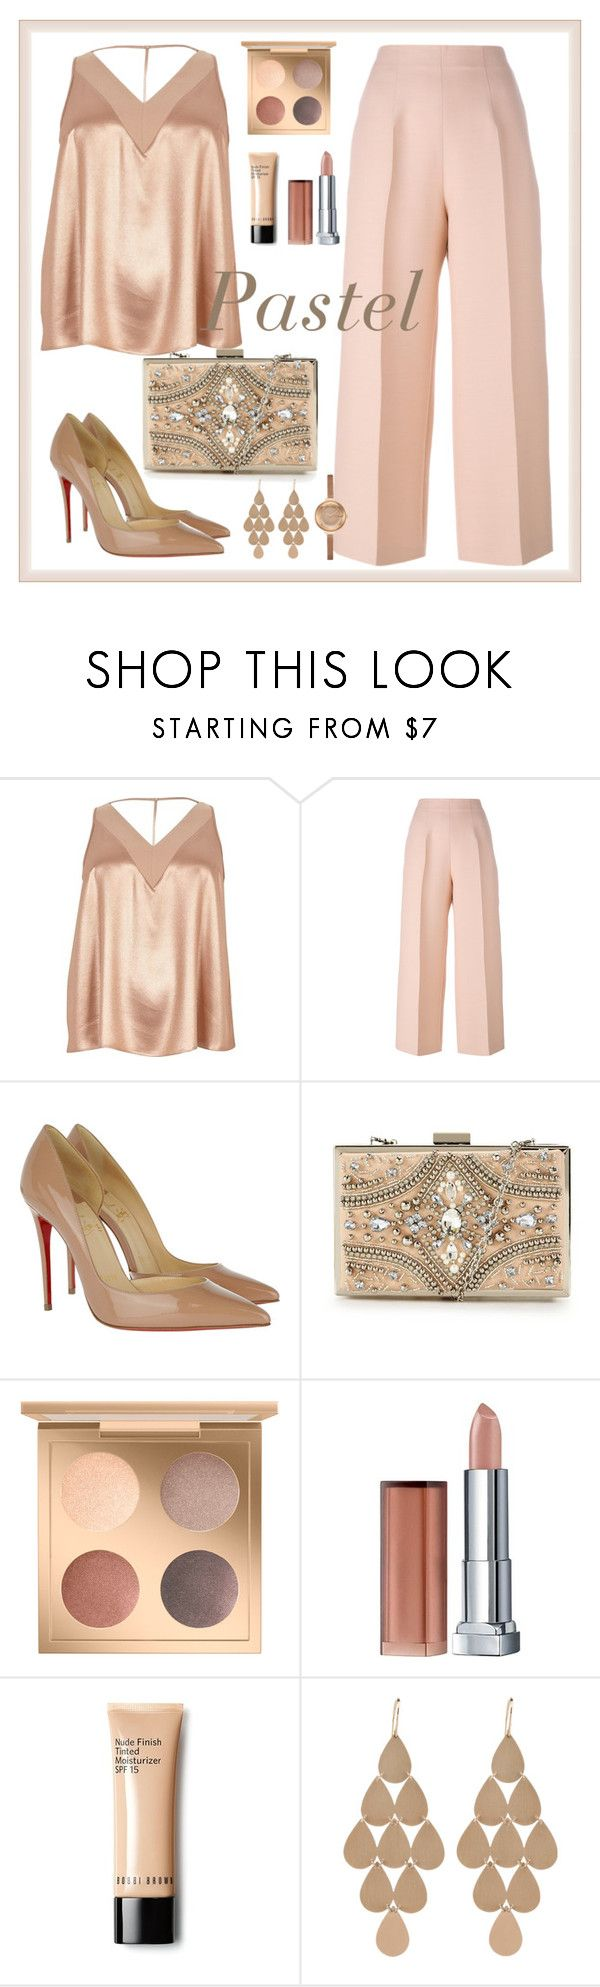 """""""Untitled #204"""" by aida0488 ❤ liked on Polyvore featuring River Island, Fendi, Christian Louboutin, Forever Unique, Maybelline, Irene Neuwirth and plus size clothing"""